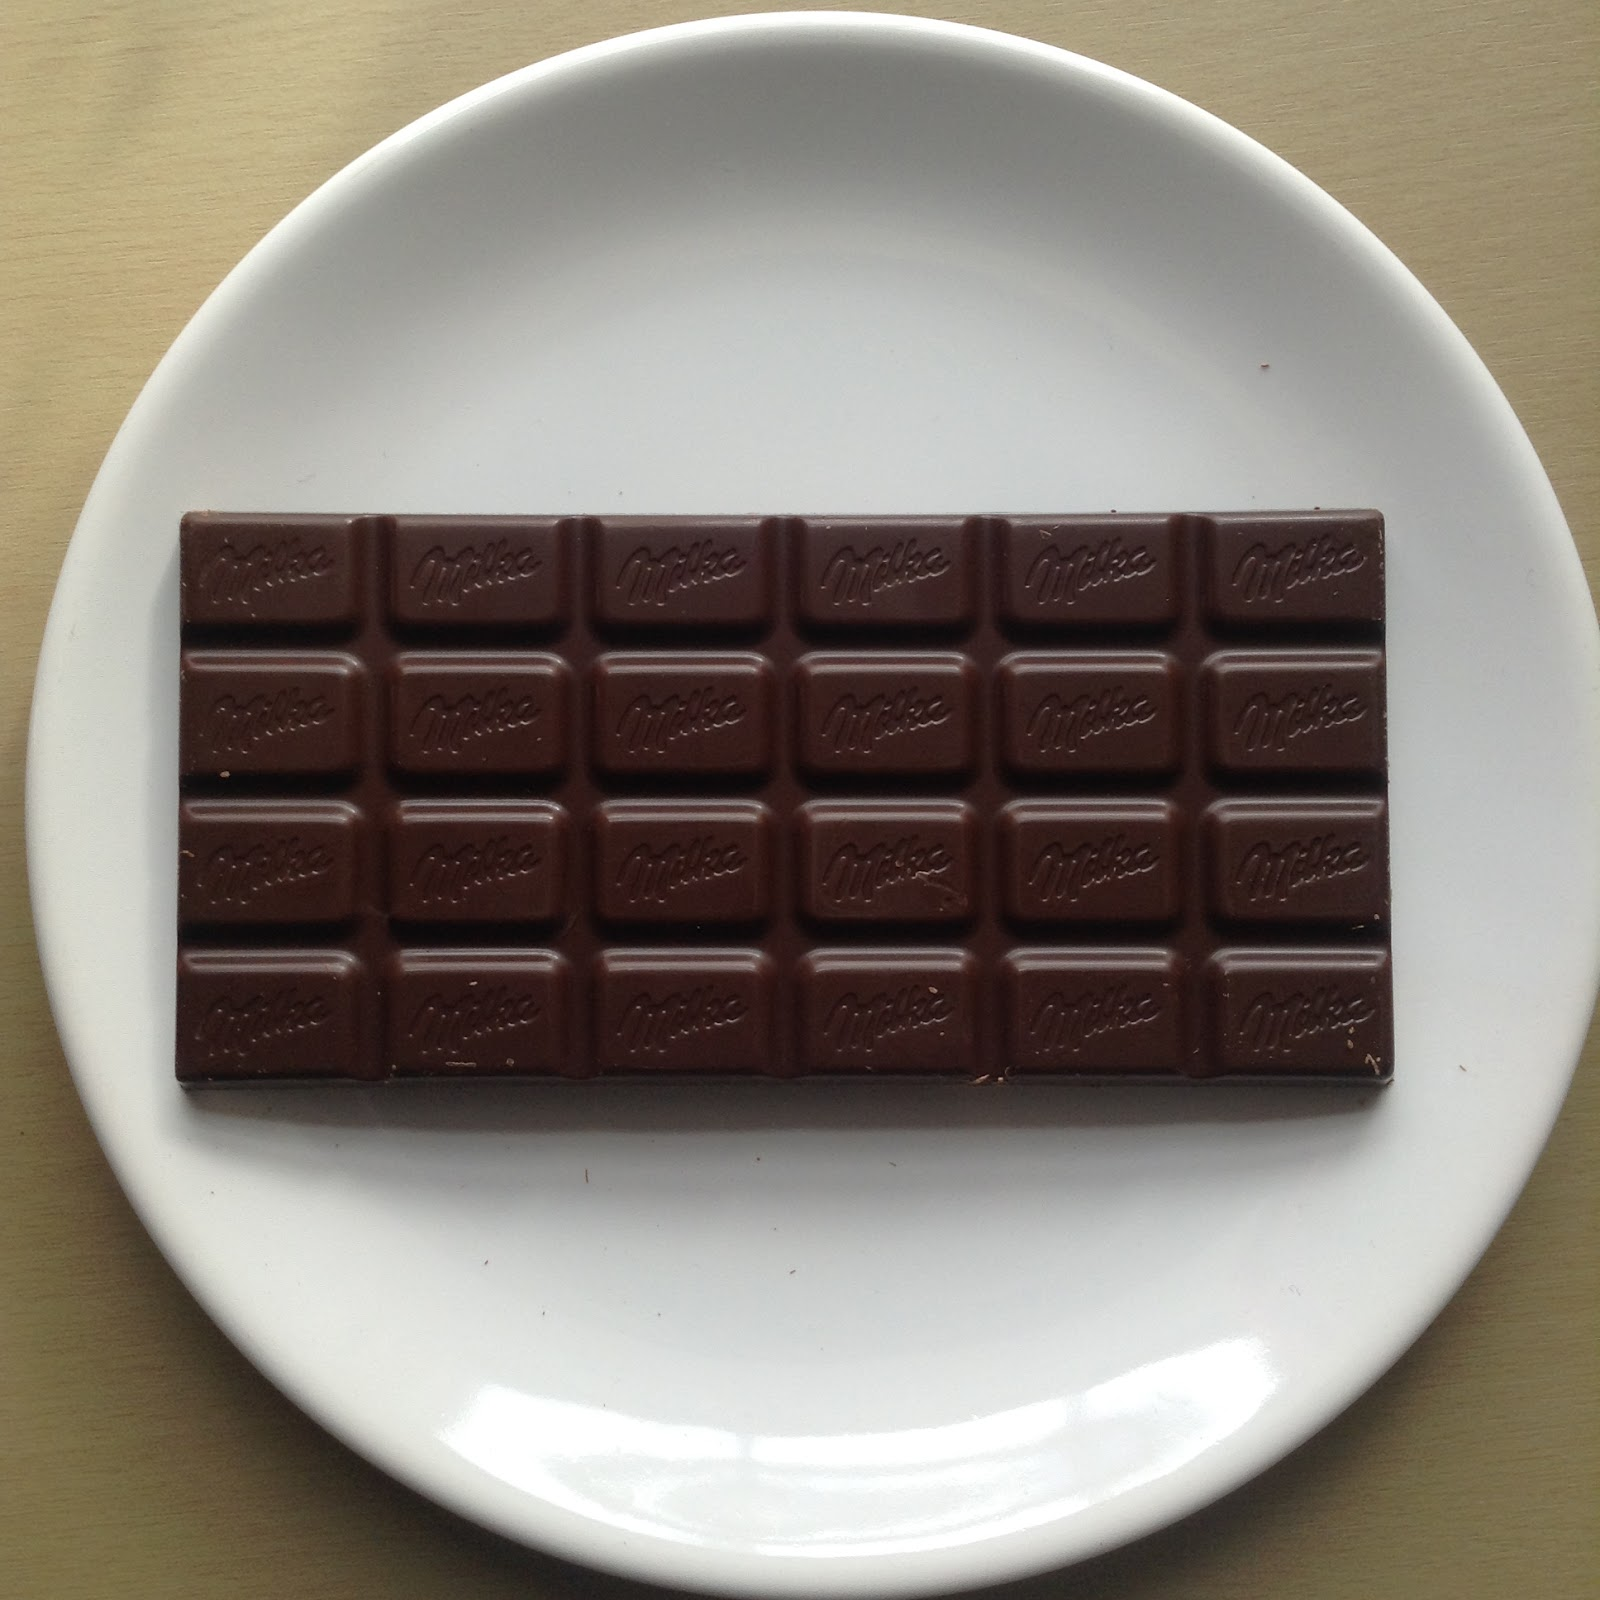 milk chocolate or dark chocolate Craft chocolates made by artisan candy makers with clean ingredients, fair trade certified cocoa.